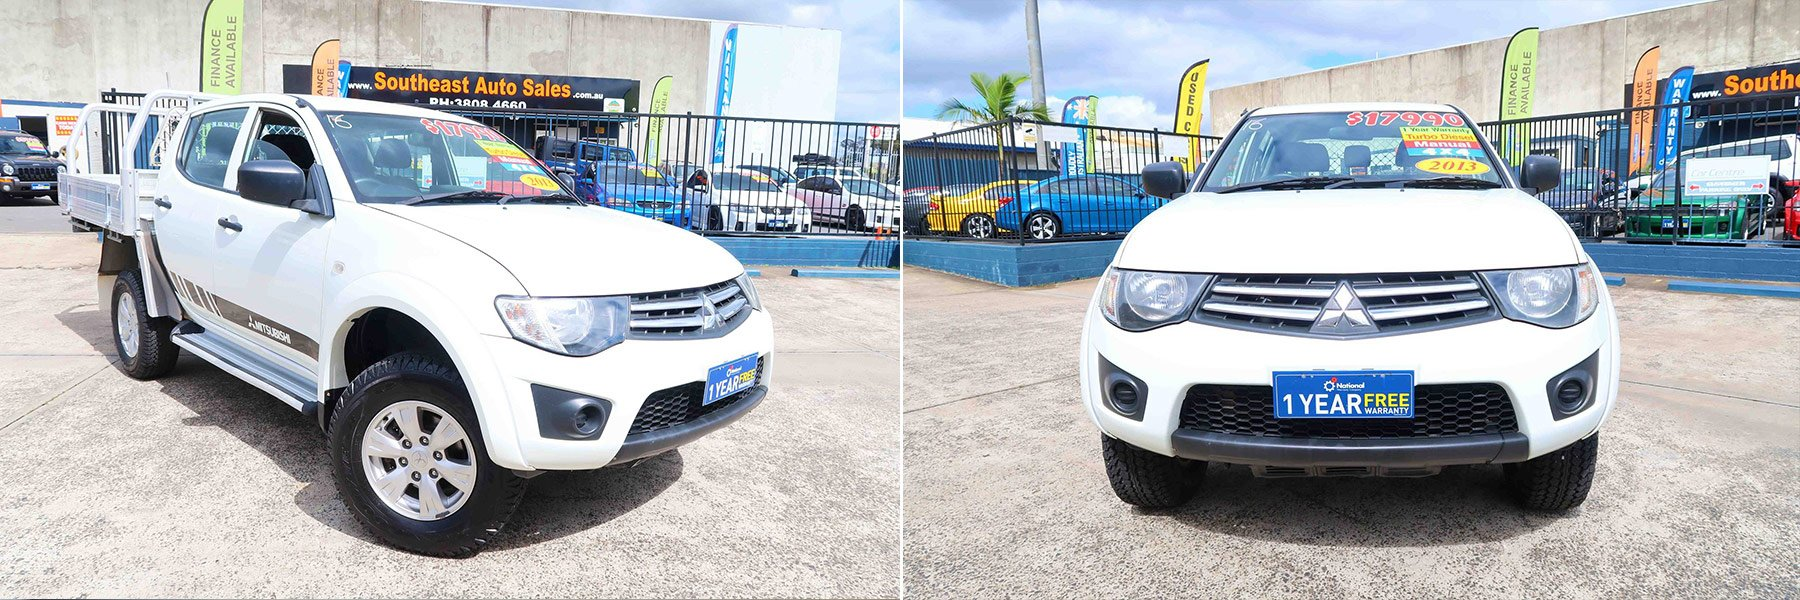 south east auto sales used car dealers underwood